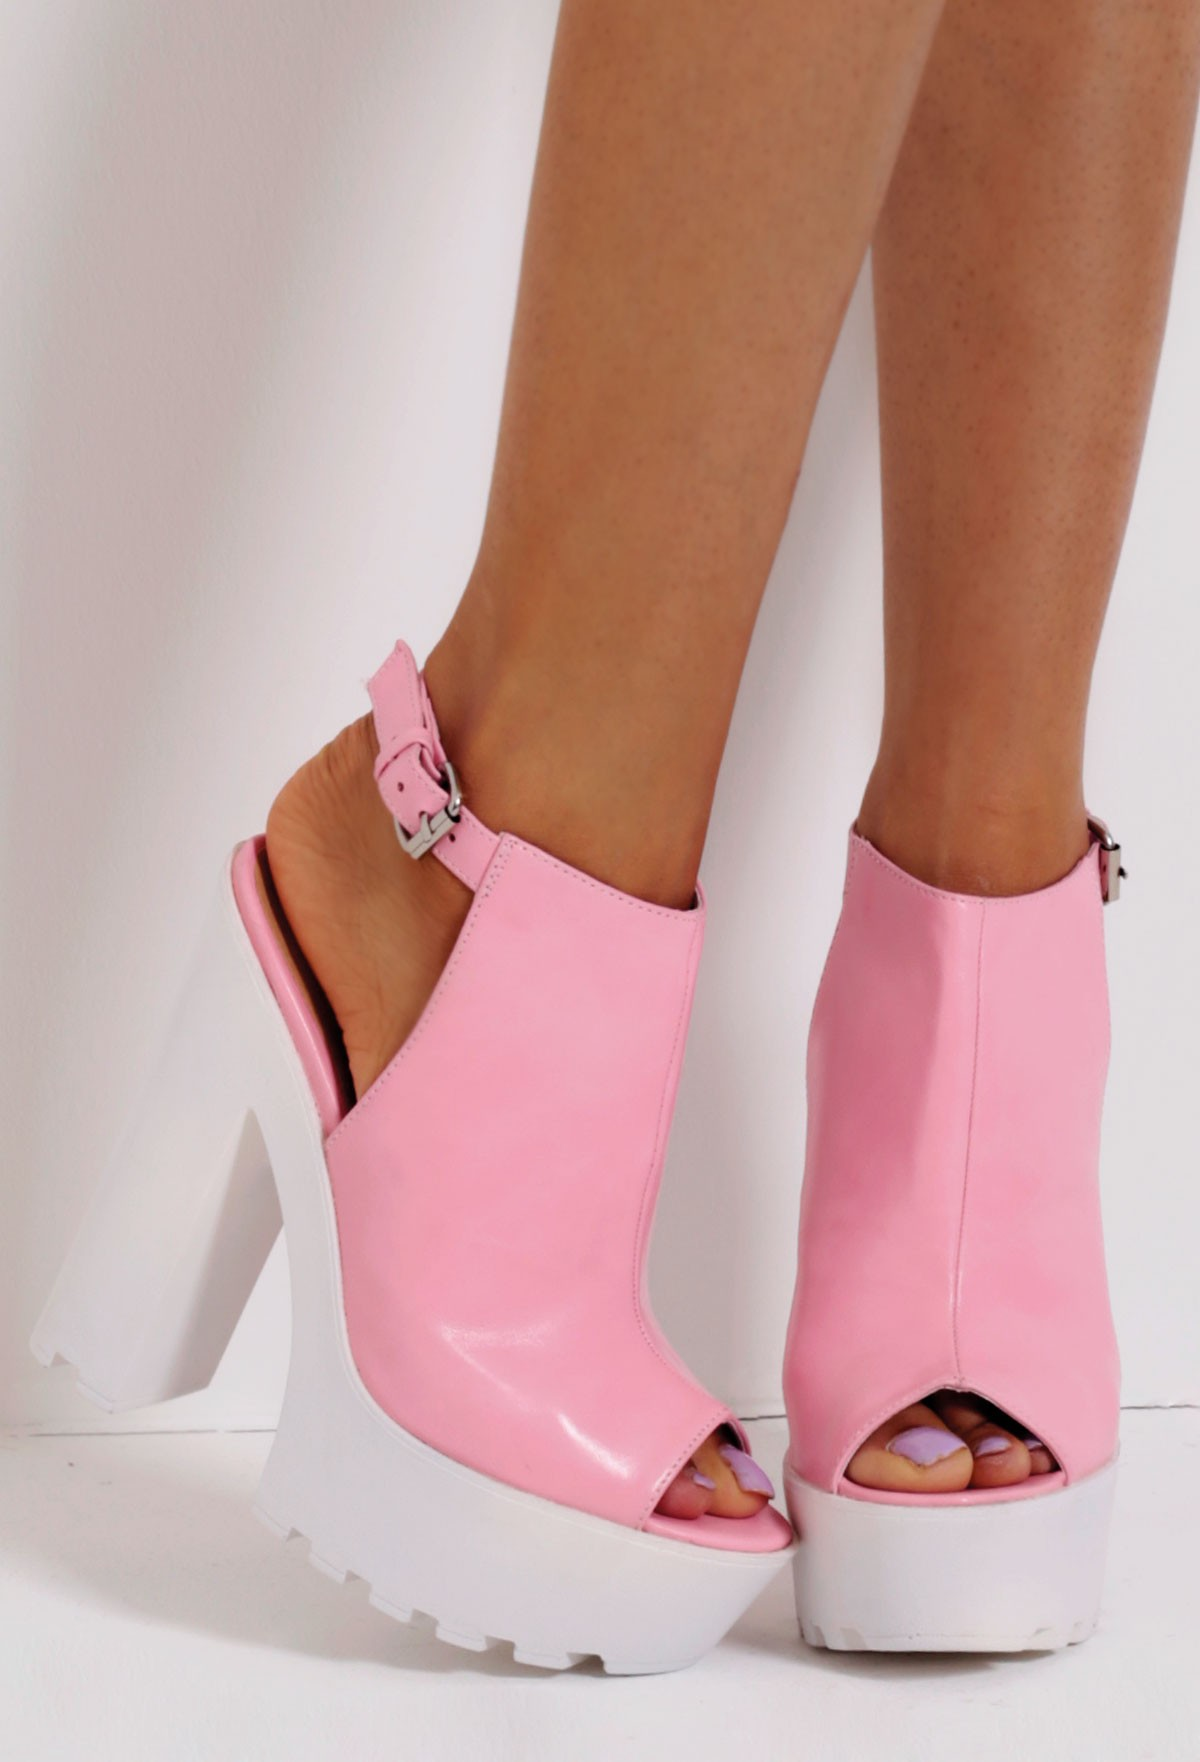 Candyfloss Pink Slingback Tractor Sole Platform Shoes | Pink Boutique